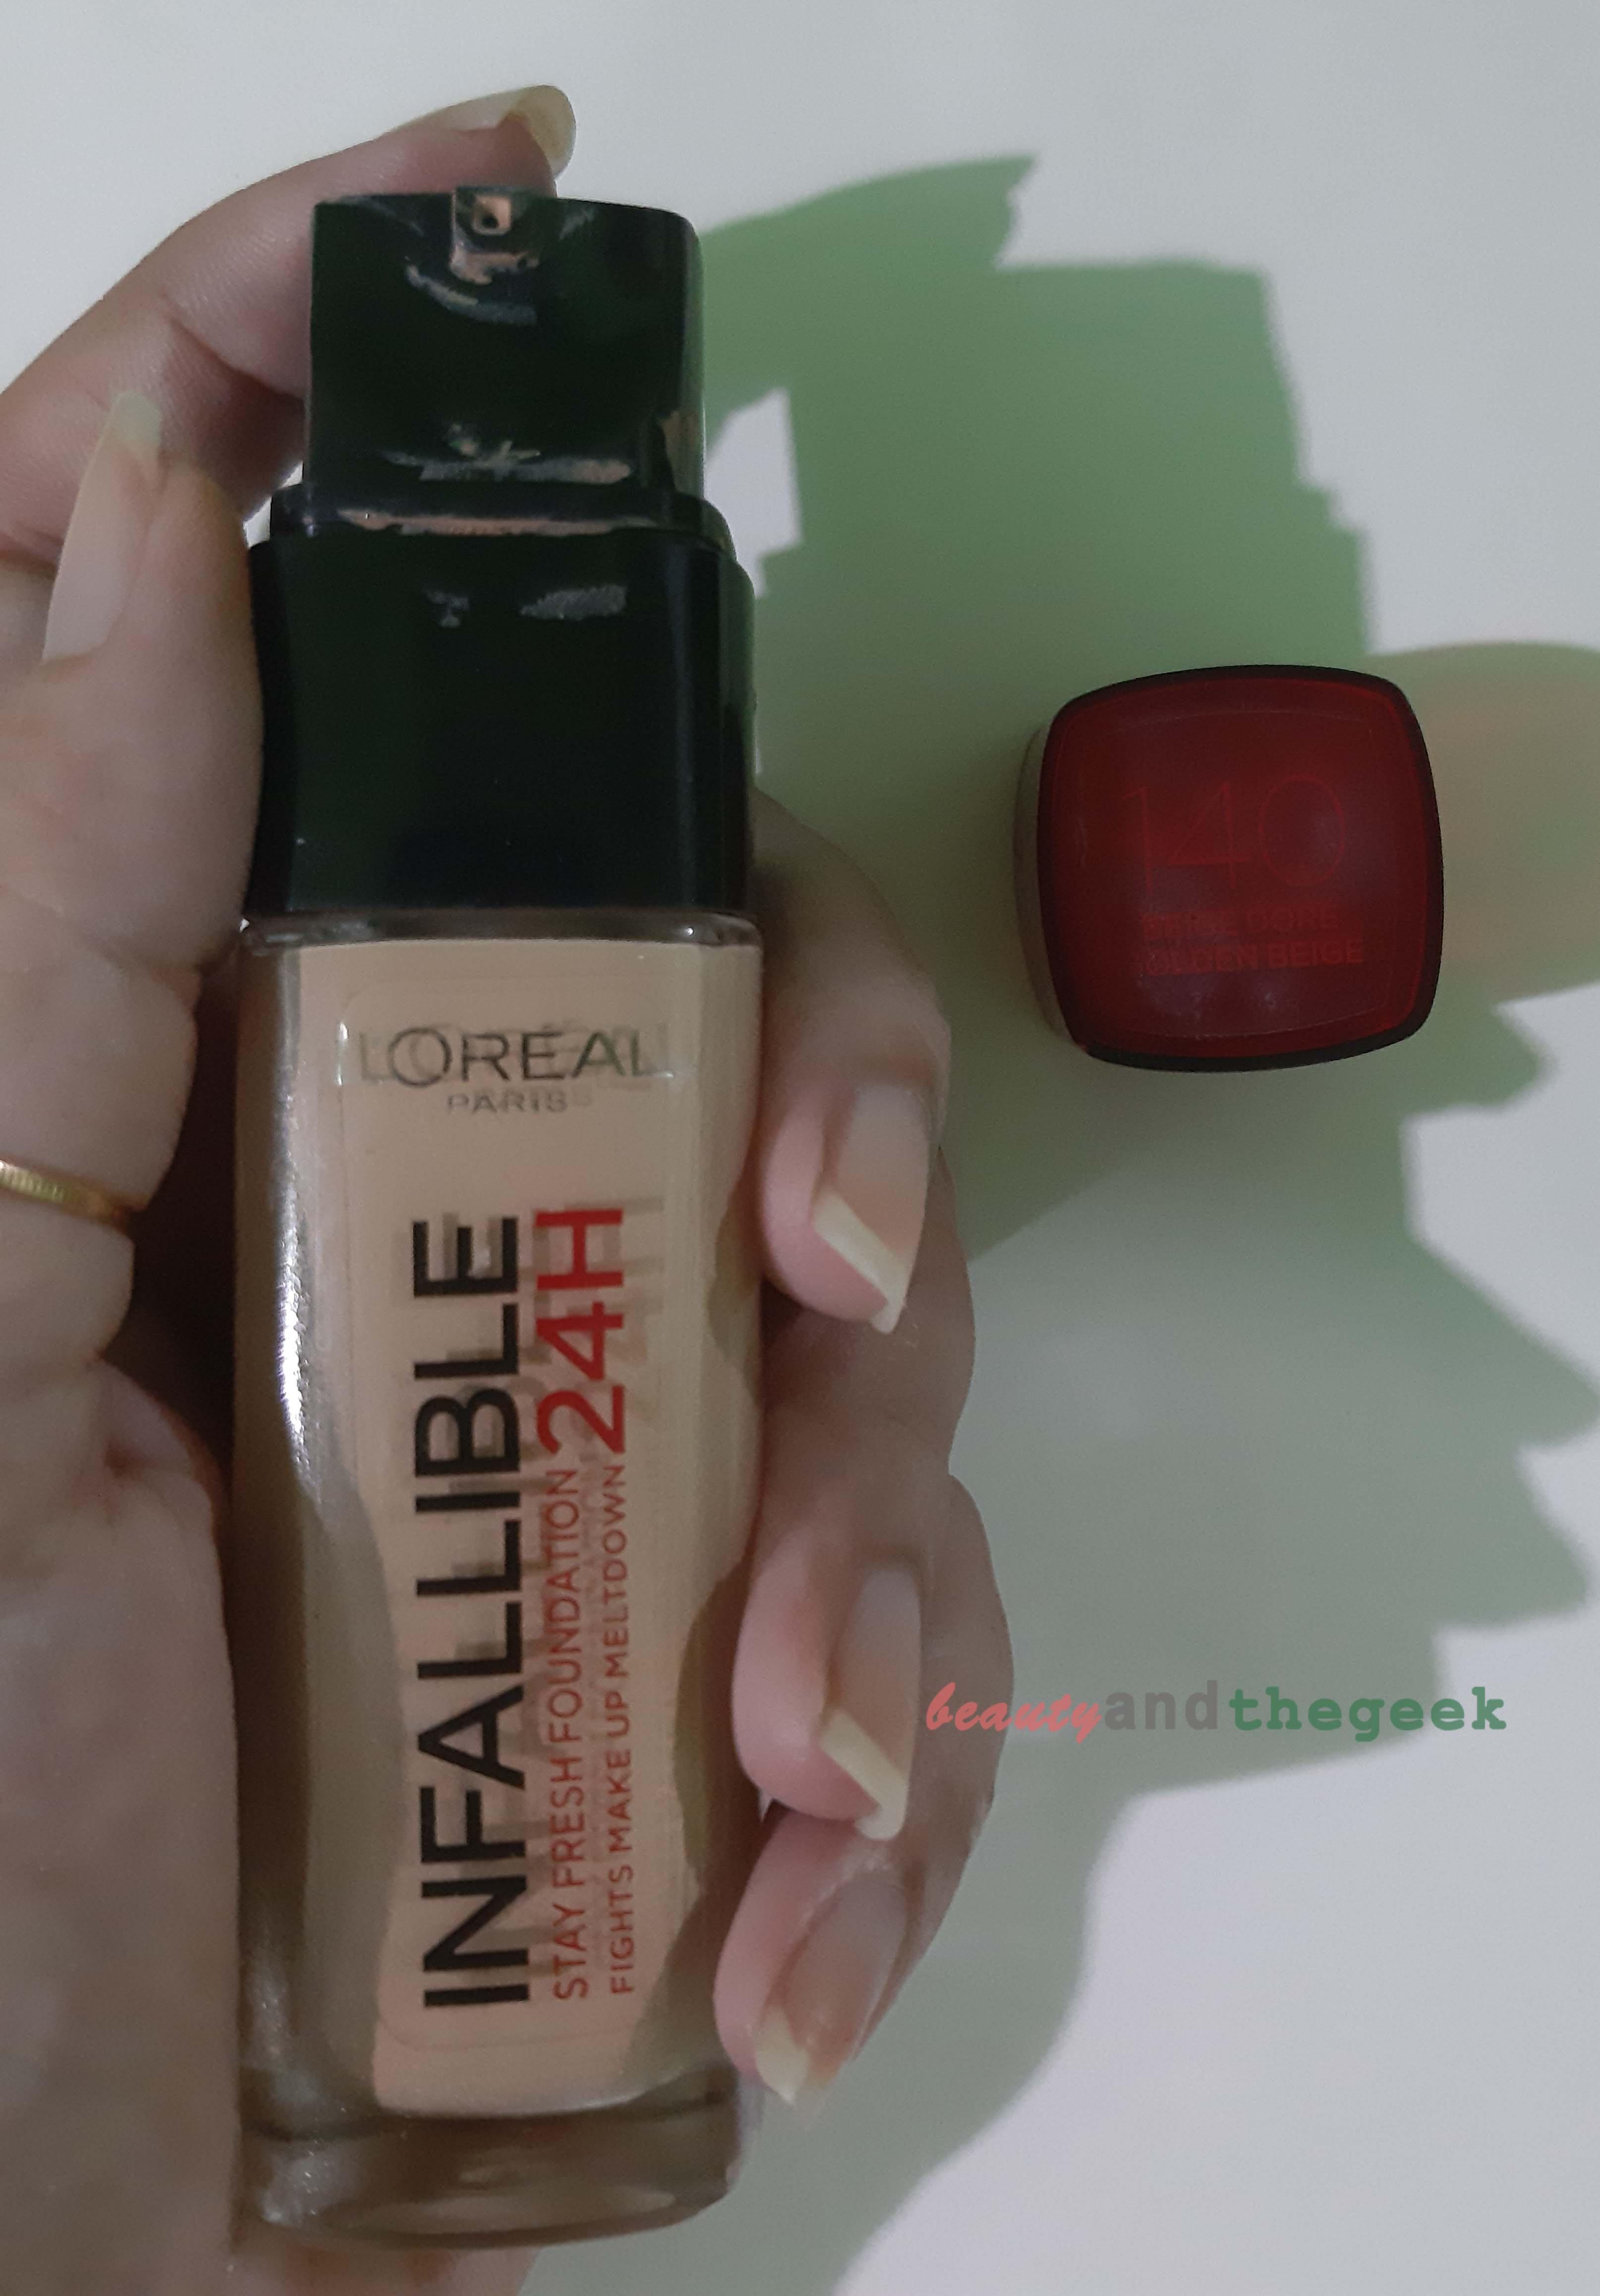 L'Oreal Paris INFALLIBLE 24h stay fresh foundation Review